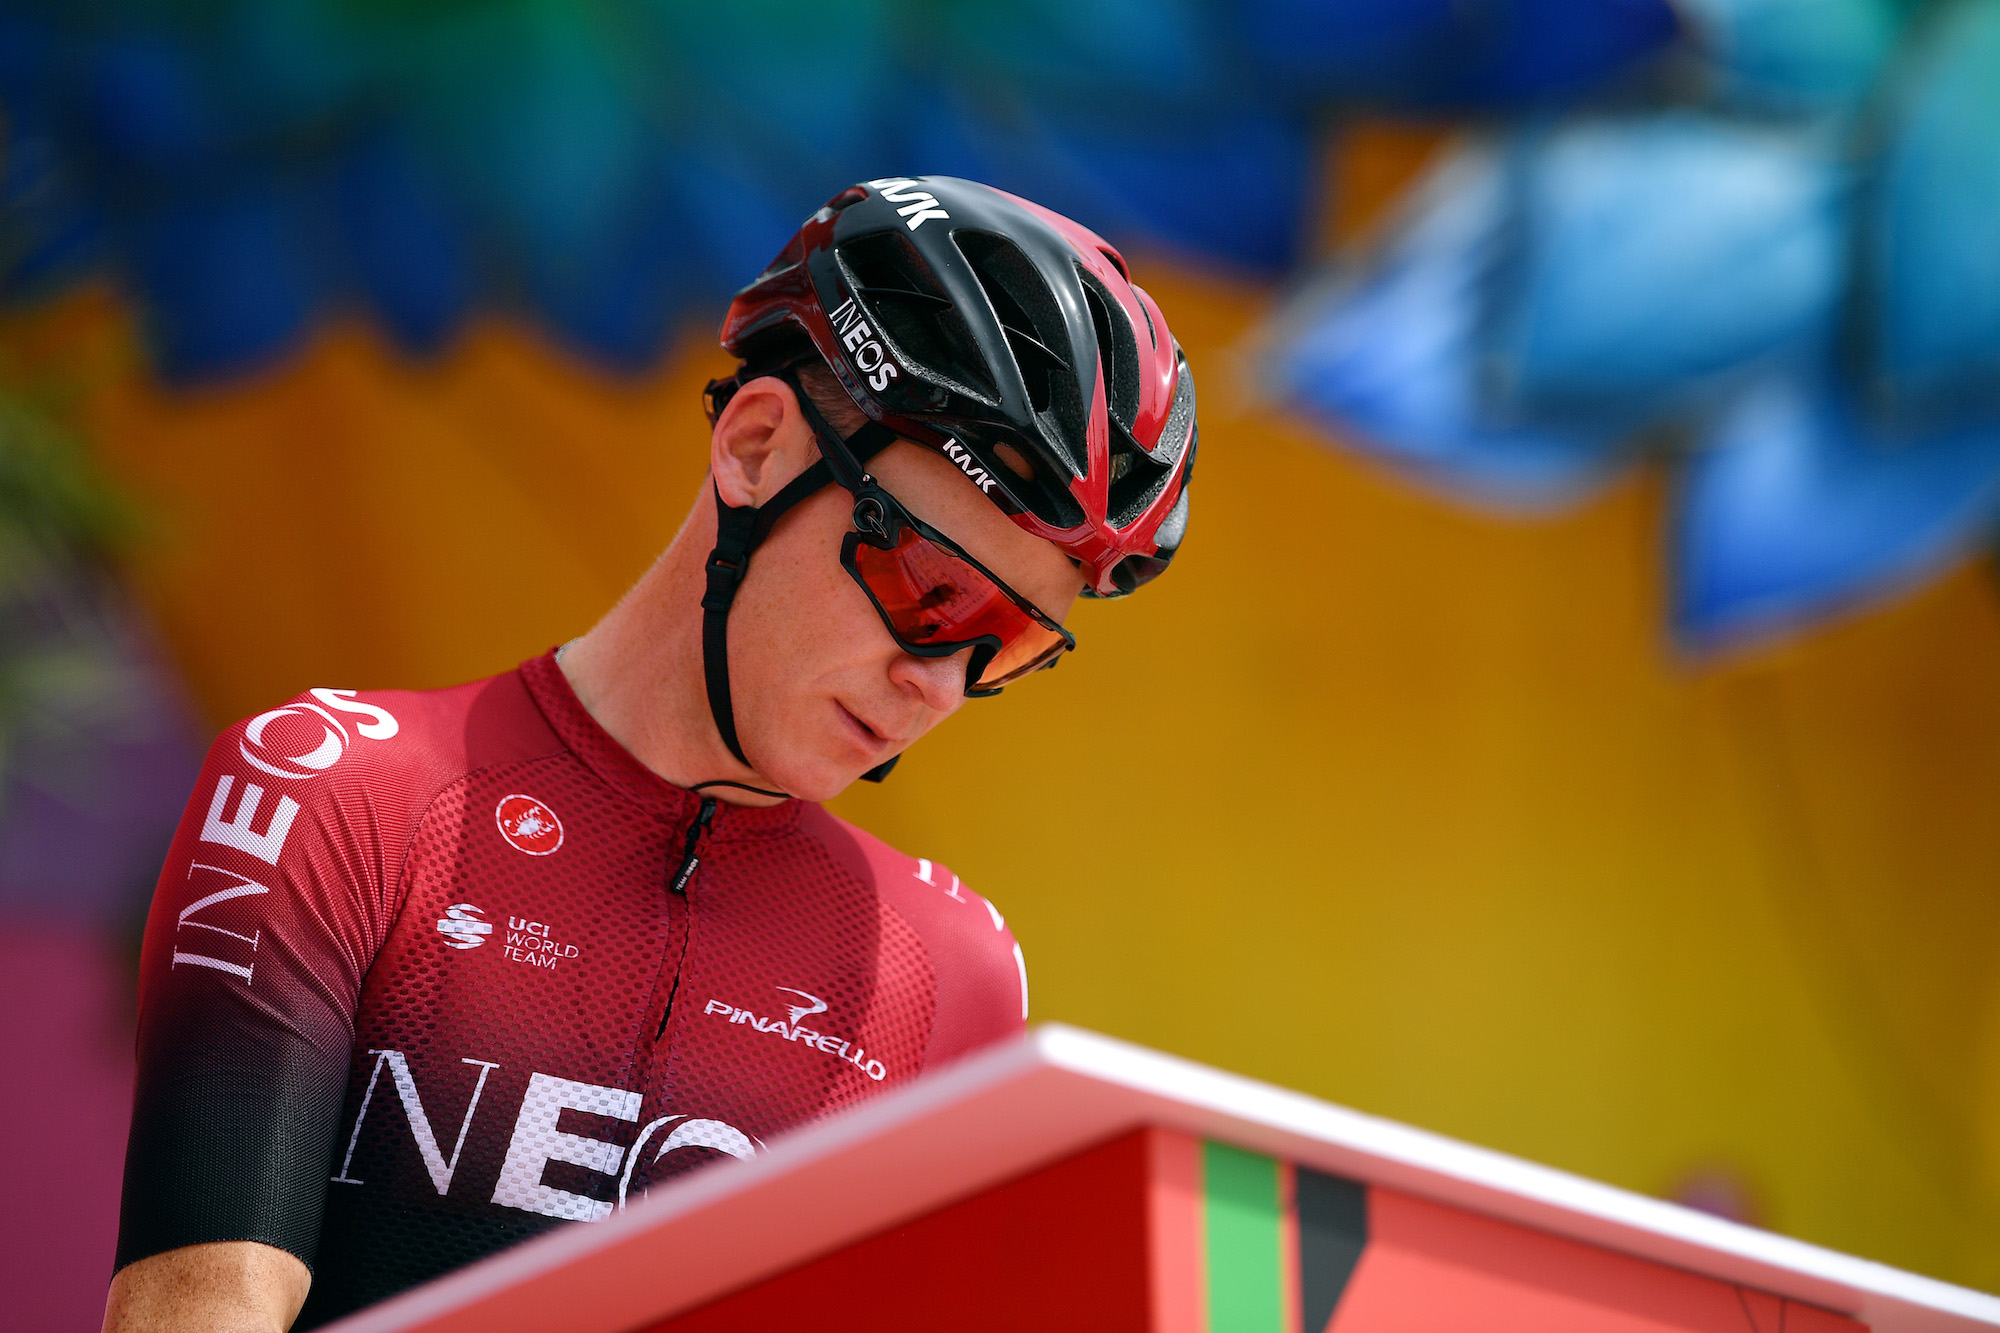 Froome's departure from Ineos is no surprise, but it still raises plenty of questions - Cycling Weekly